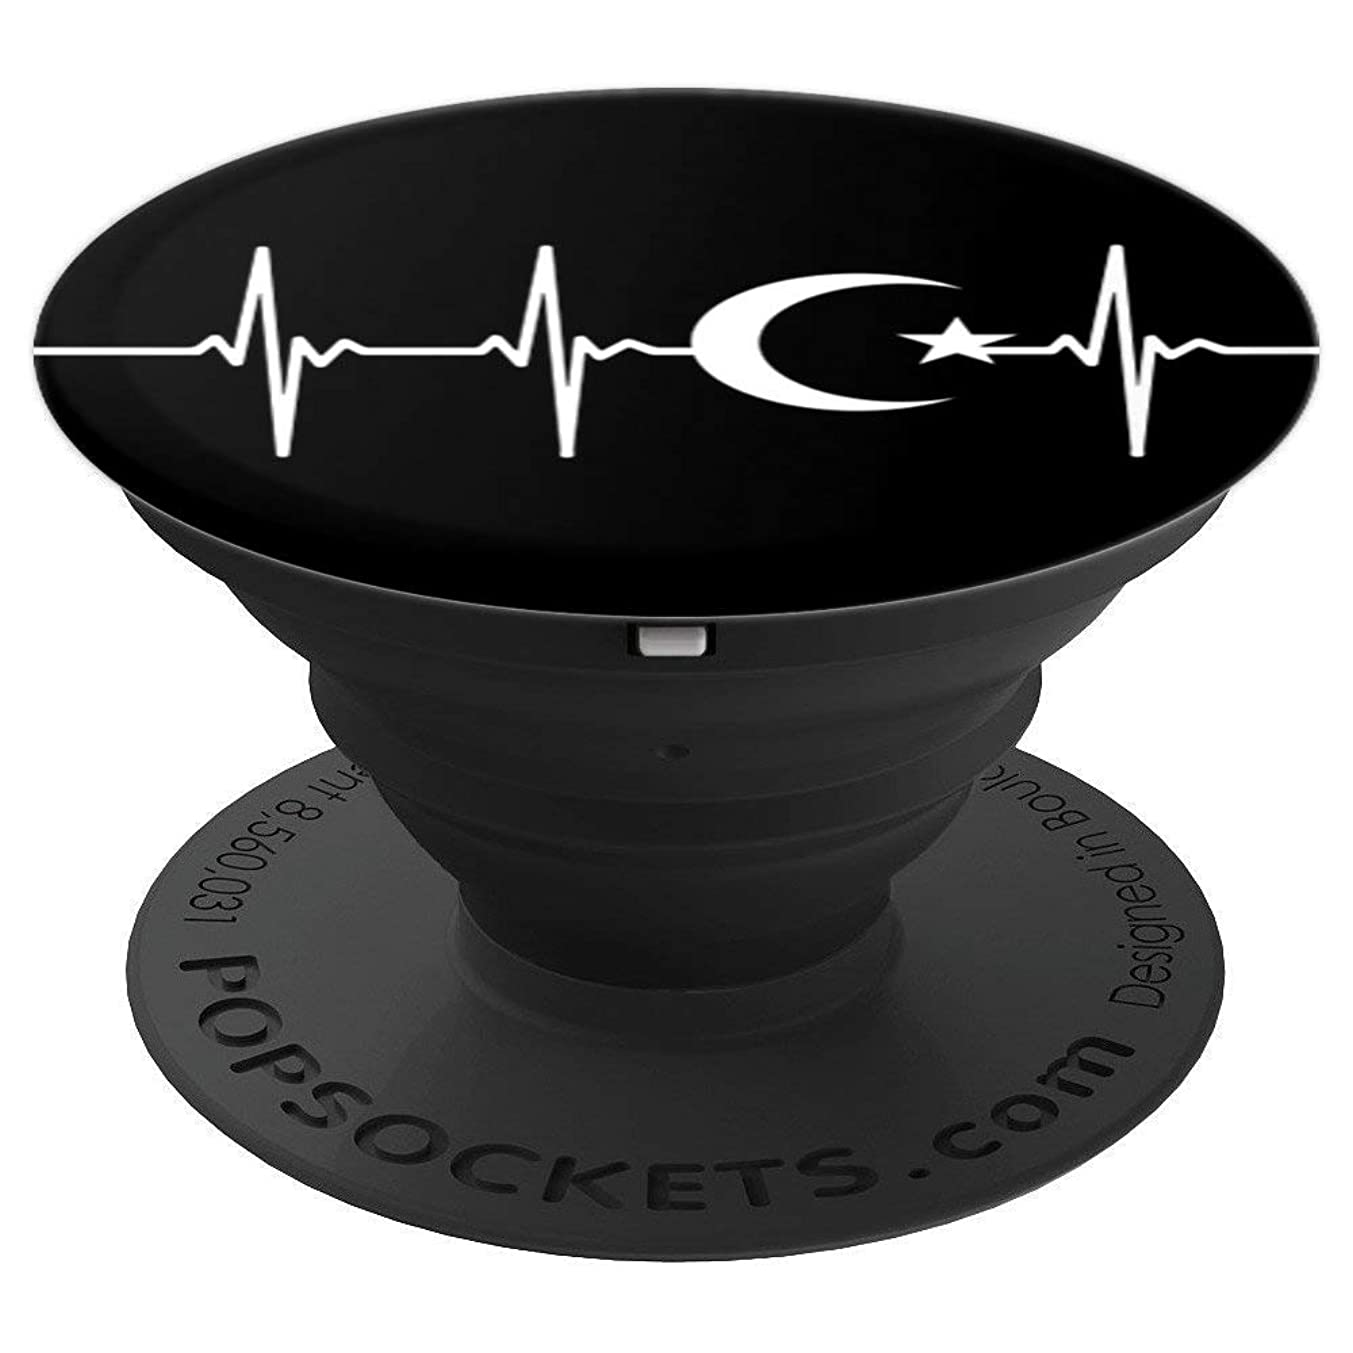 Islam Muslim Heartbeat EKG - PopSockets Grip and Stand for Phones and Tablets